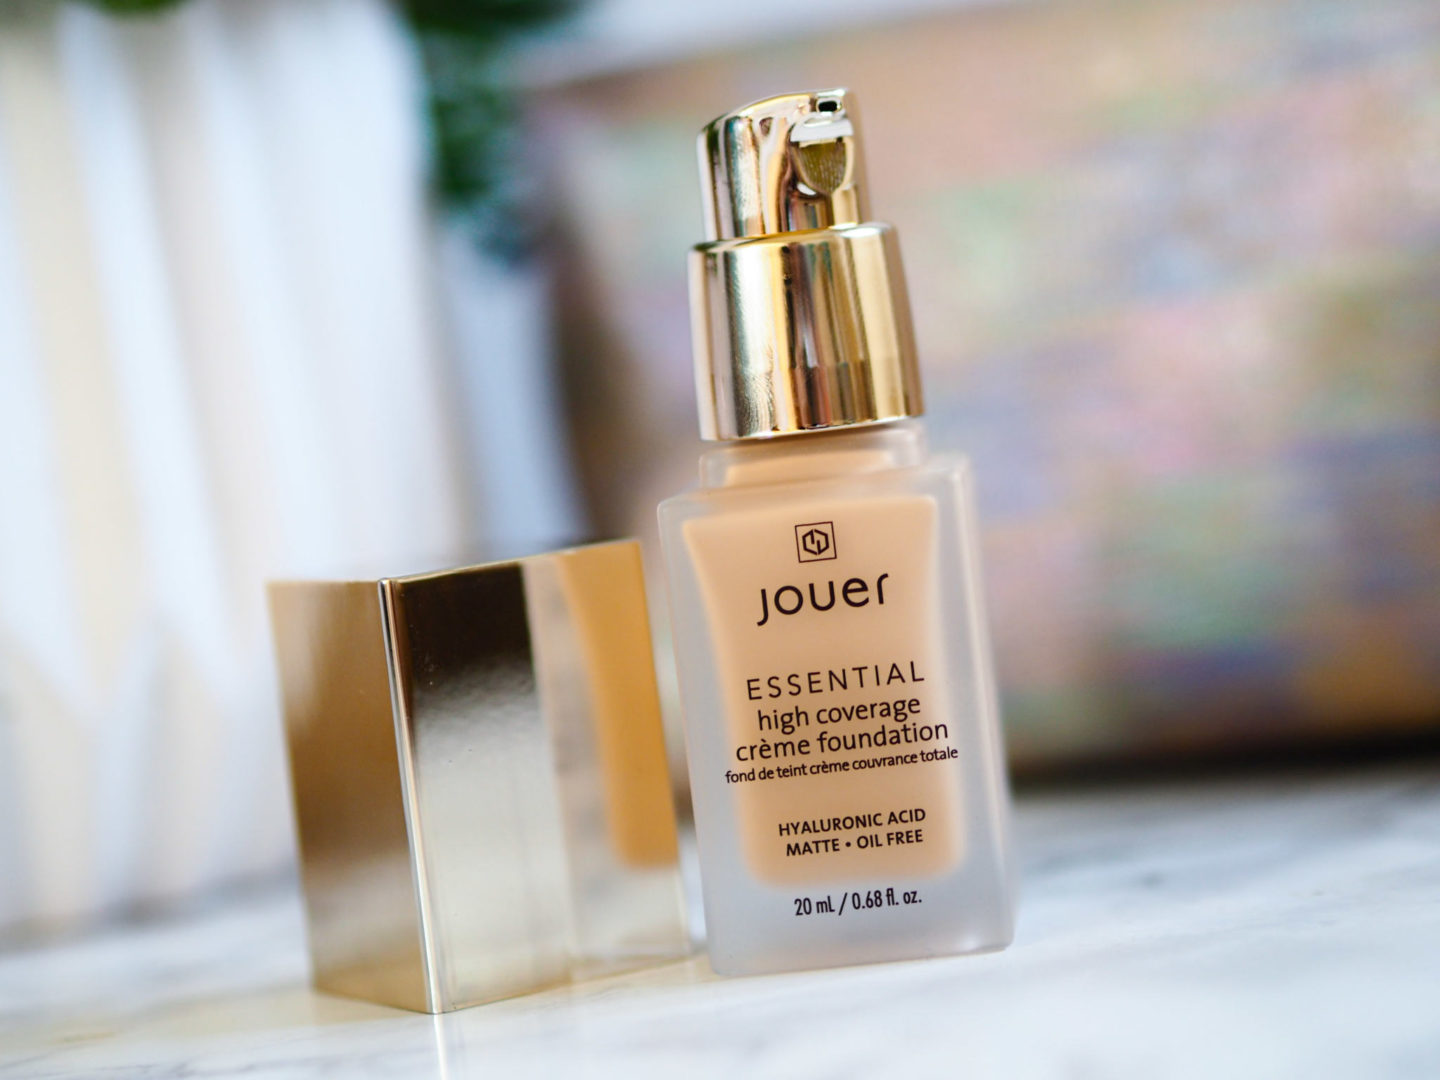 Jouer Essential High Coverage Foundation in Pebble – a Kat Von D Replacement?